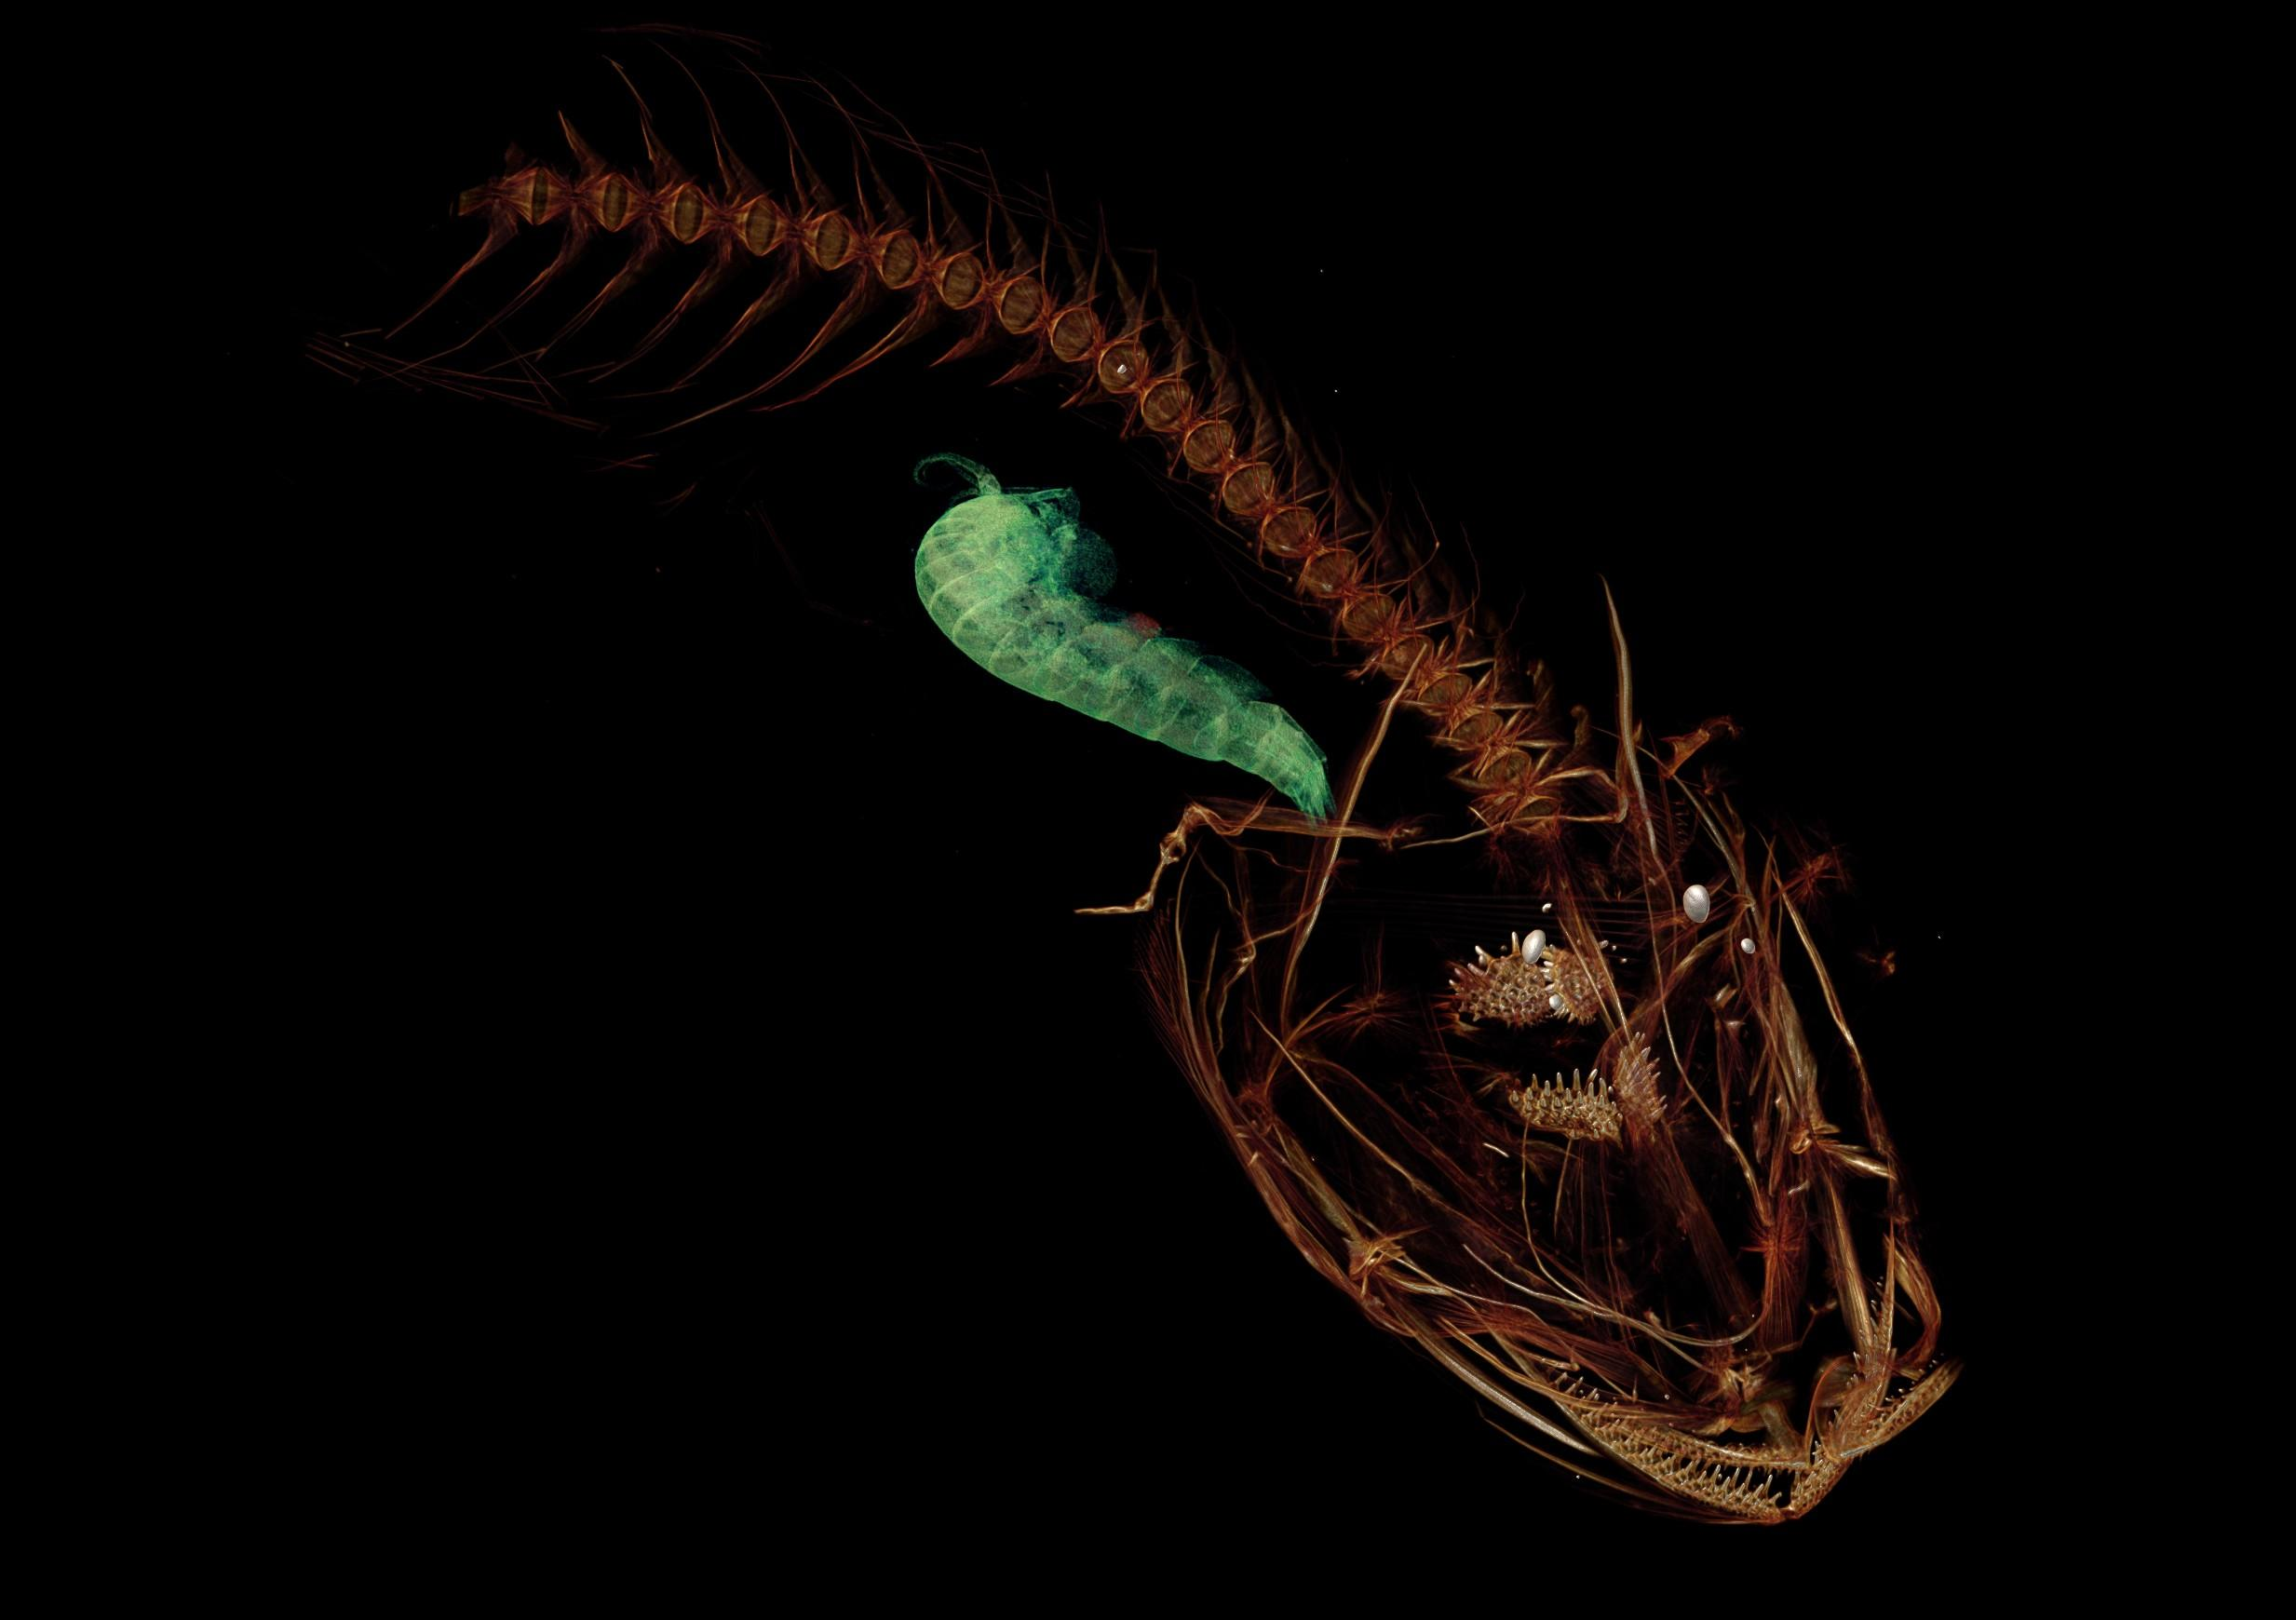 A CT scan of the Mariana snailfish.